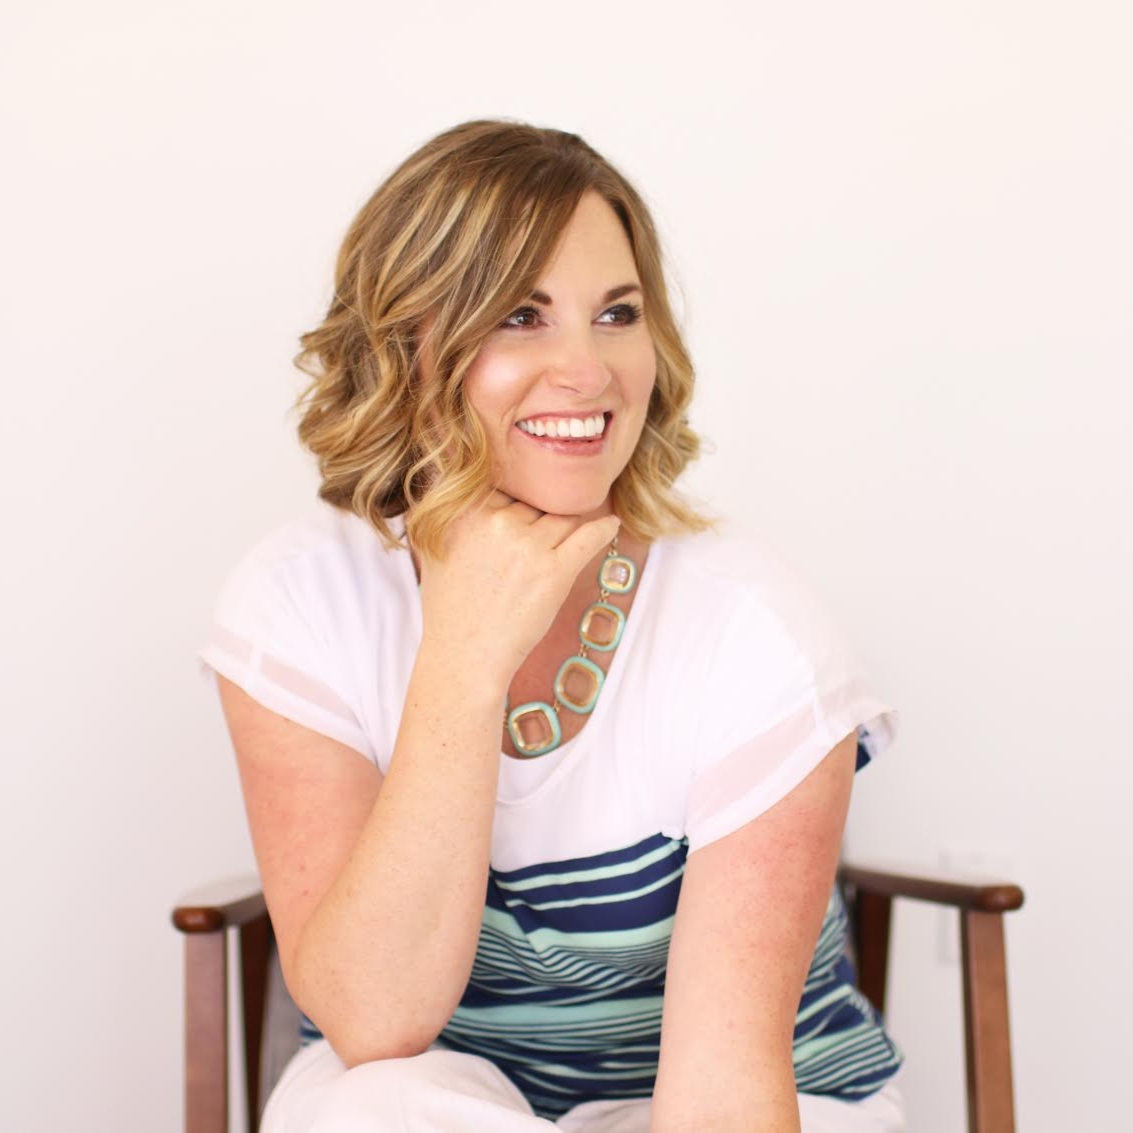 becky higgins - Becky Higgins is passionate about helping others Cultivate a Good Life and Record it. She's the creator of Project Life, and a busy wife and mother who is passionate about capturing the little bits of life, and making it easy for other to do the same. You can find her at BeckyHiggins.com, and @BeckyHigginsLLC.